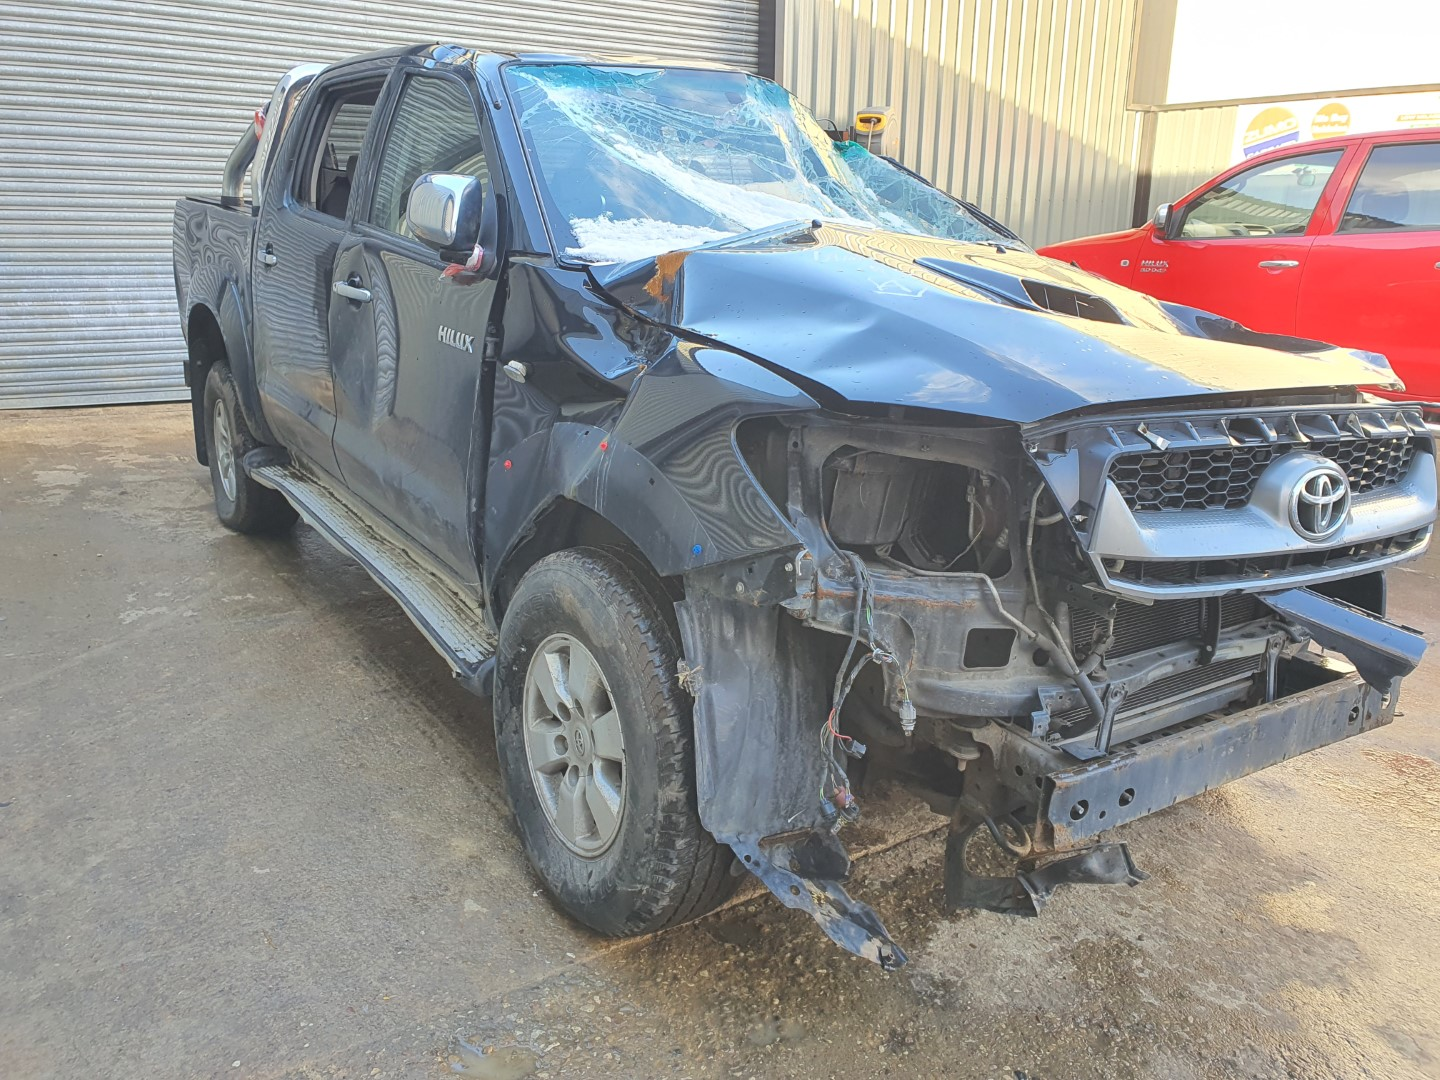 REF 207 TOYOTA HILUX HL3 DCB 2010 2.5D4D 5 SPEED MANUAL